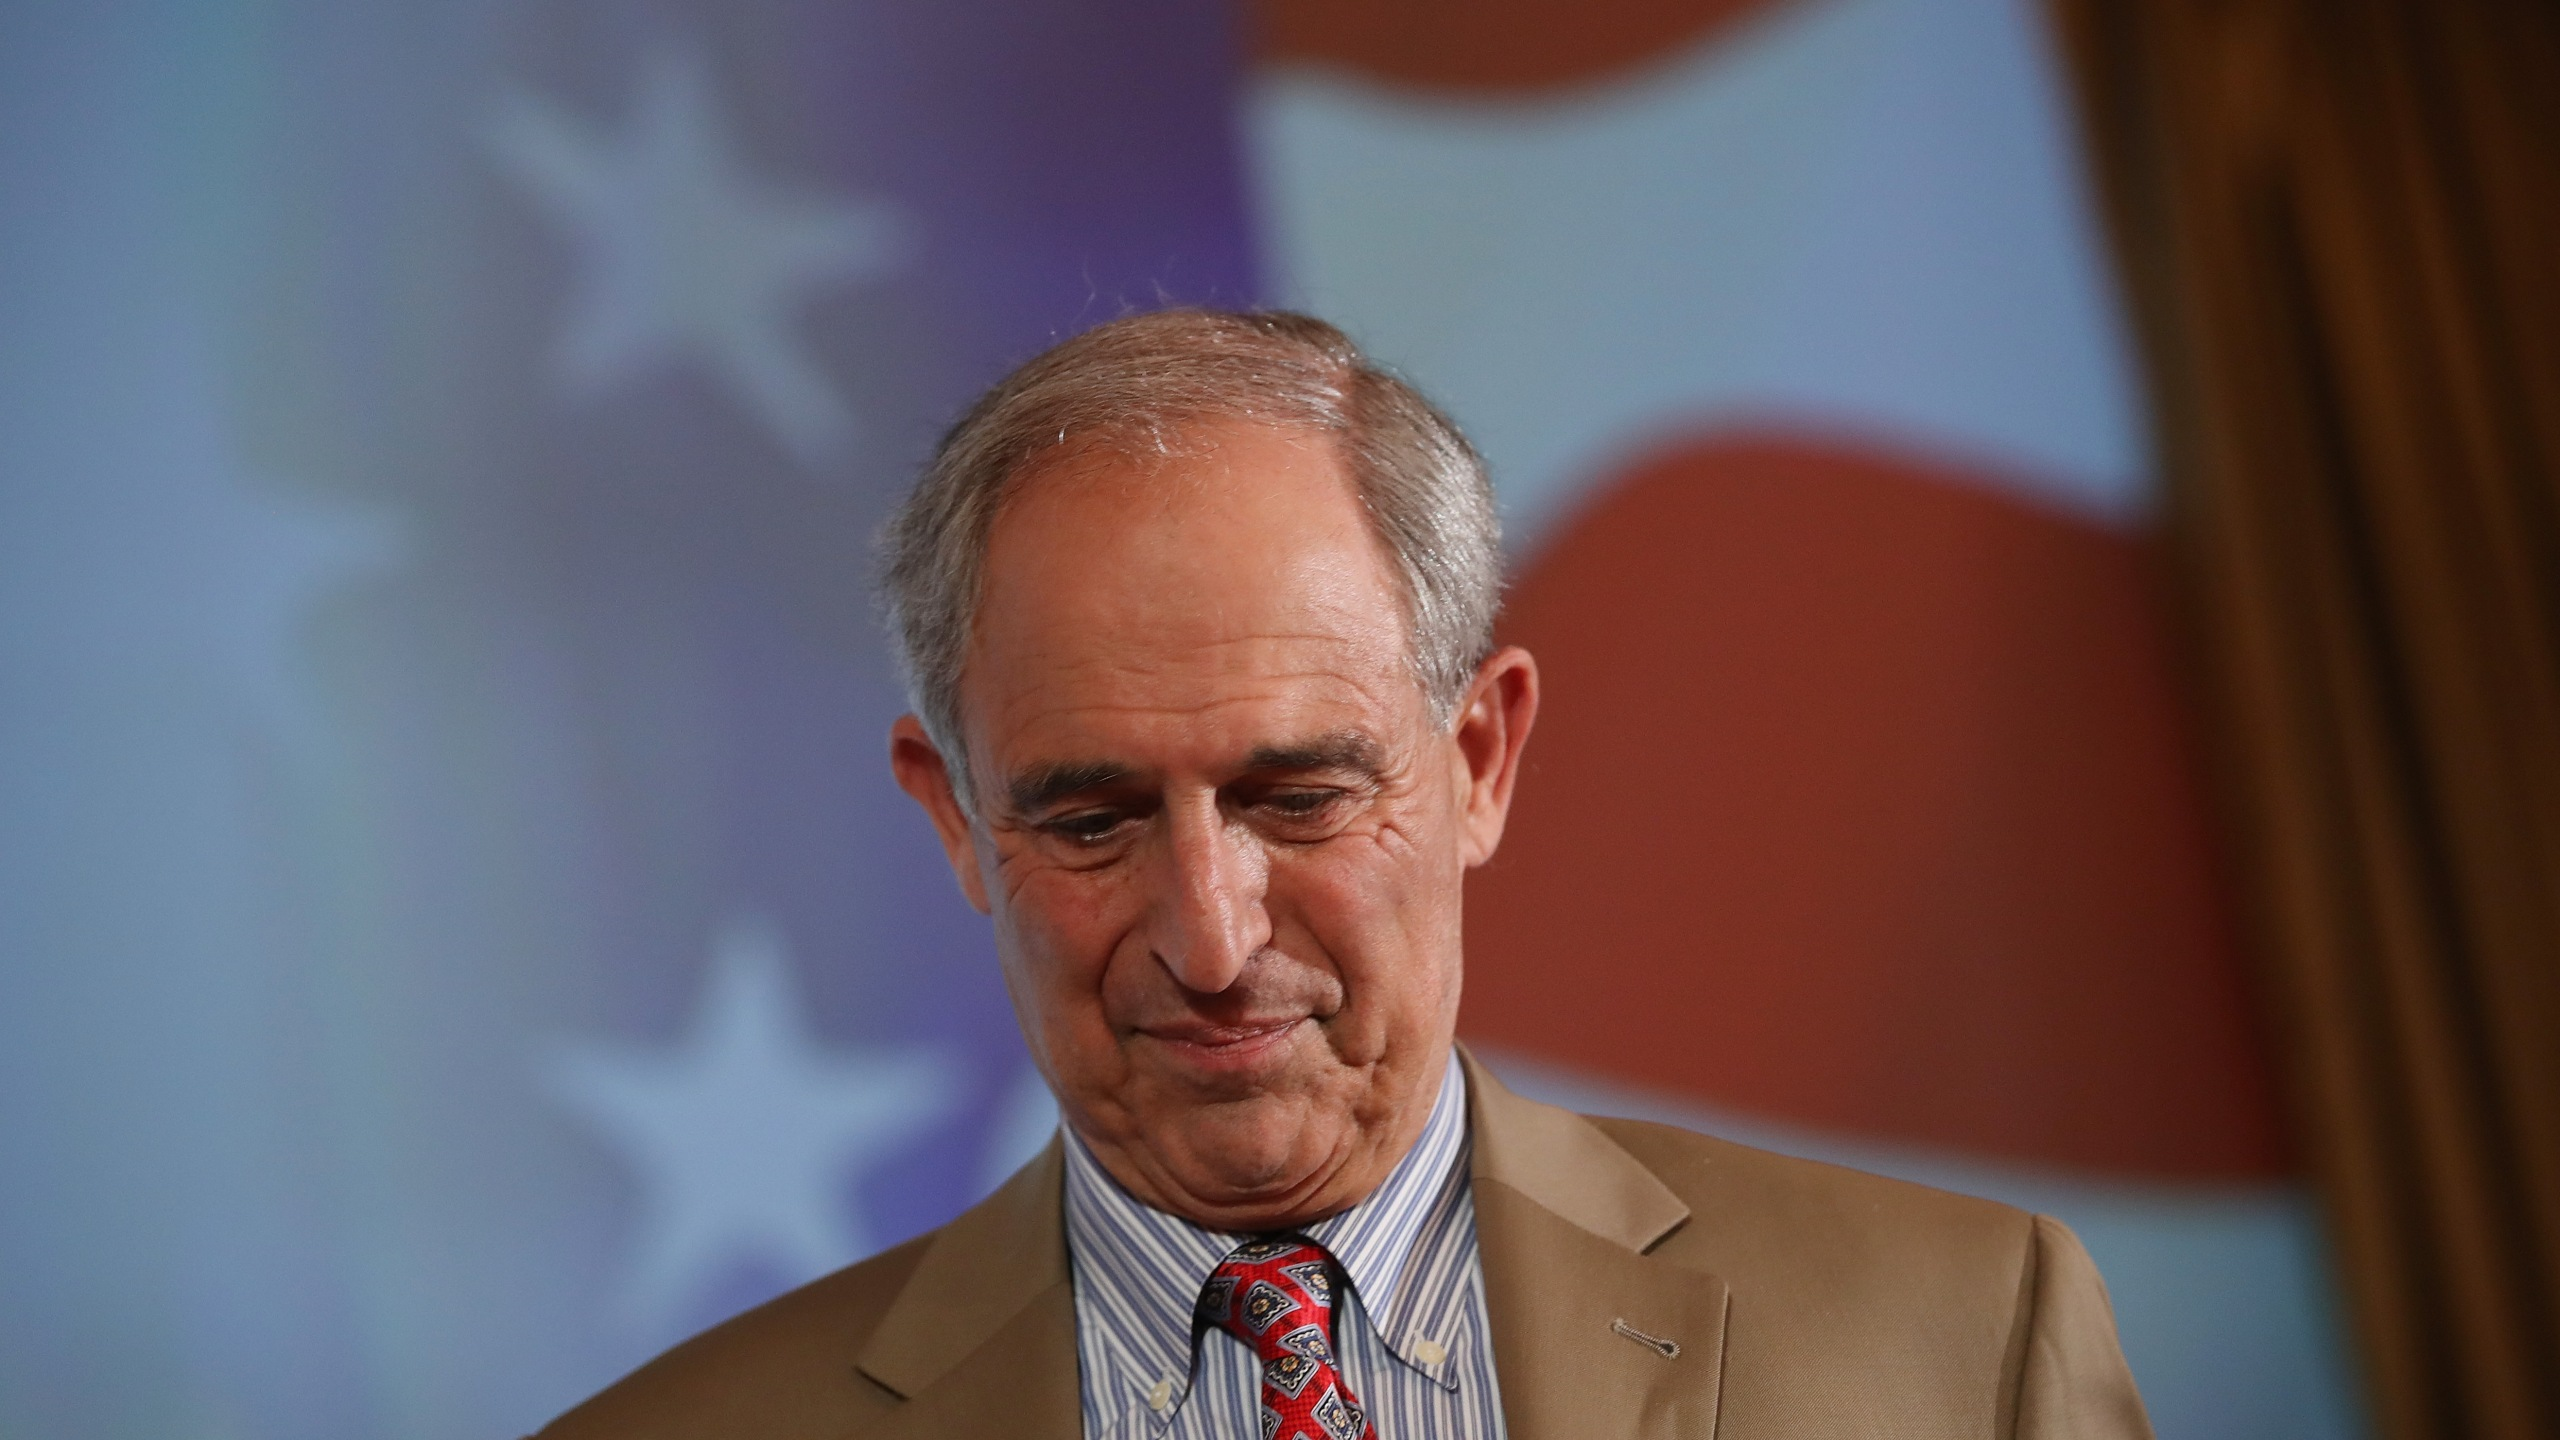 Lanny Davis arrives for a debate with Steve Bannon at Zofin Palace on May 22, 2018 in Prague, Czech Republic. (Credit: Sean Gallup/Getty Images)